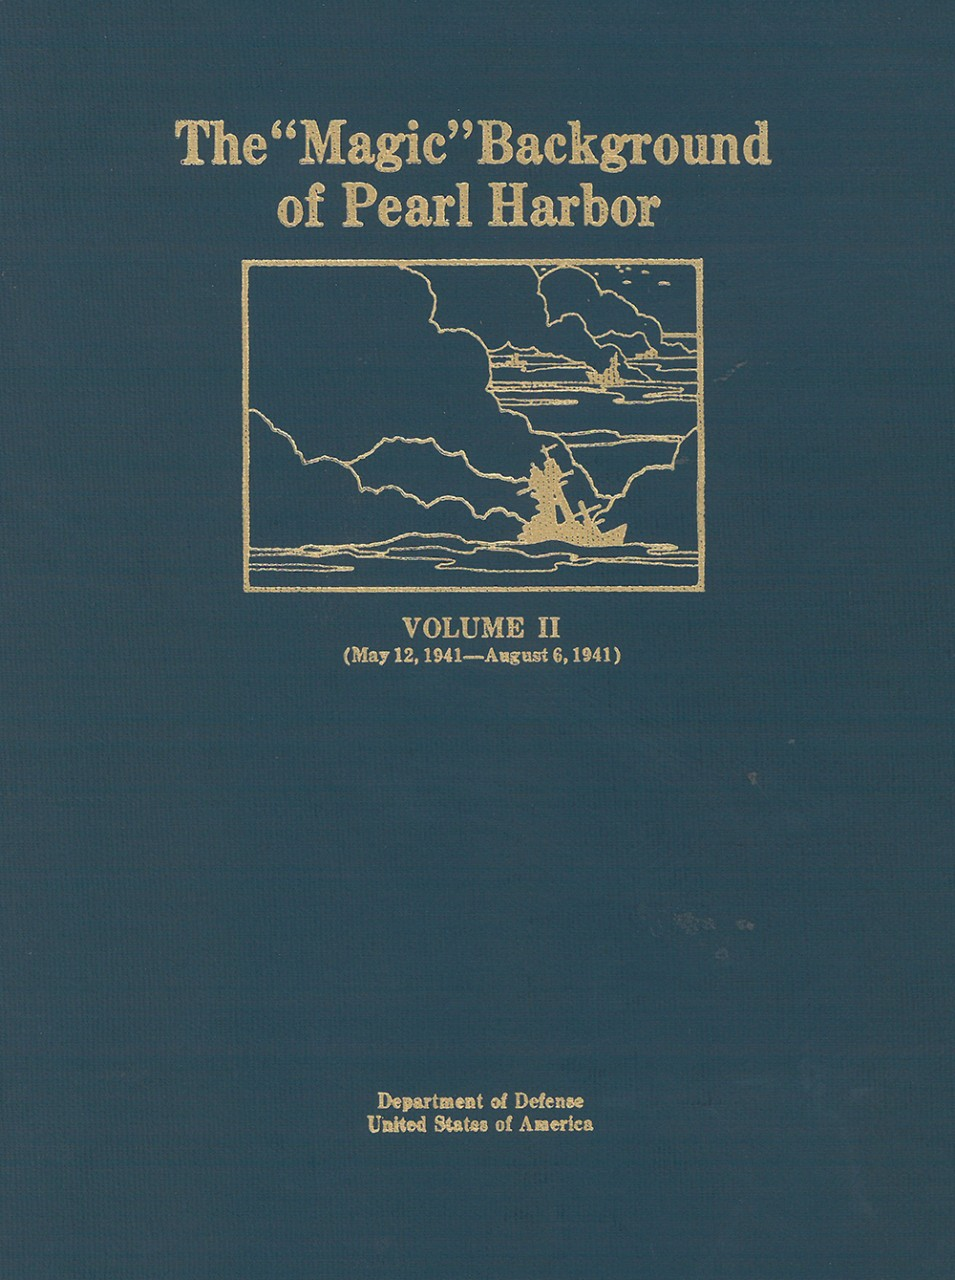 Magic Background of Pearl Harbor cover image